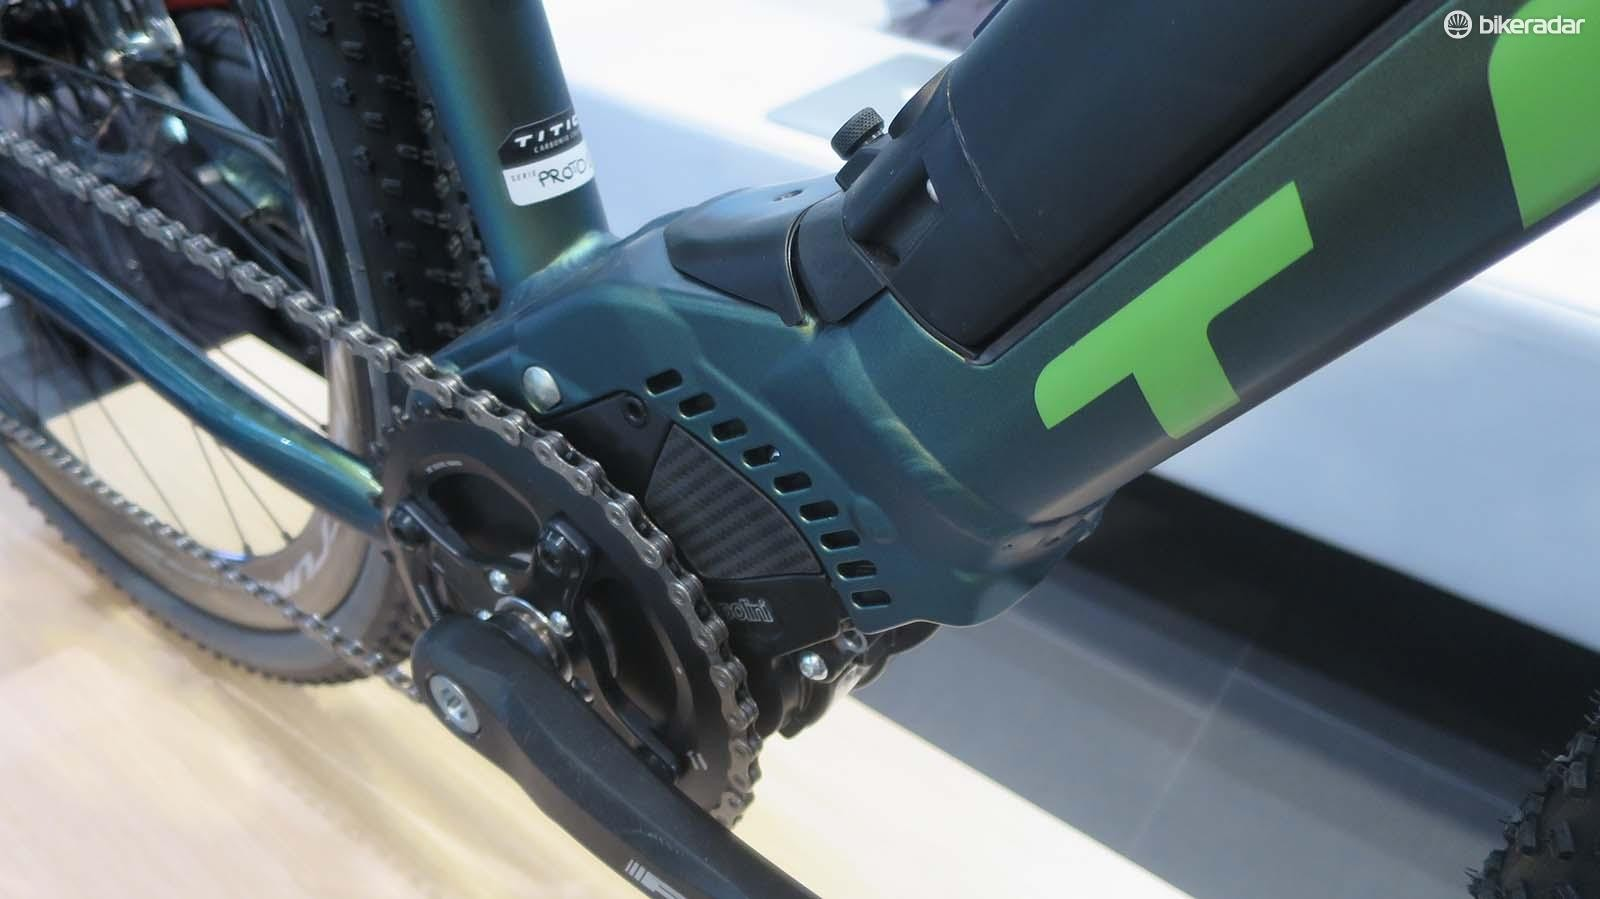 Polini's BB mounted motor is smaller than the likes of Bosch and Shimano